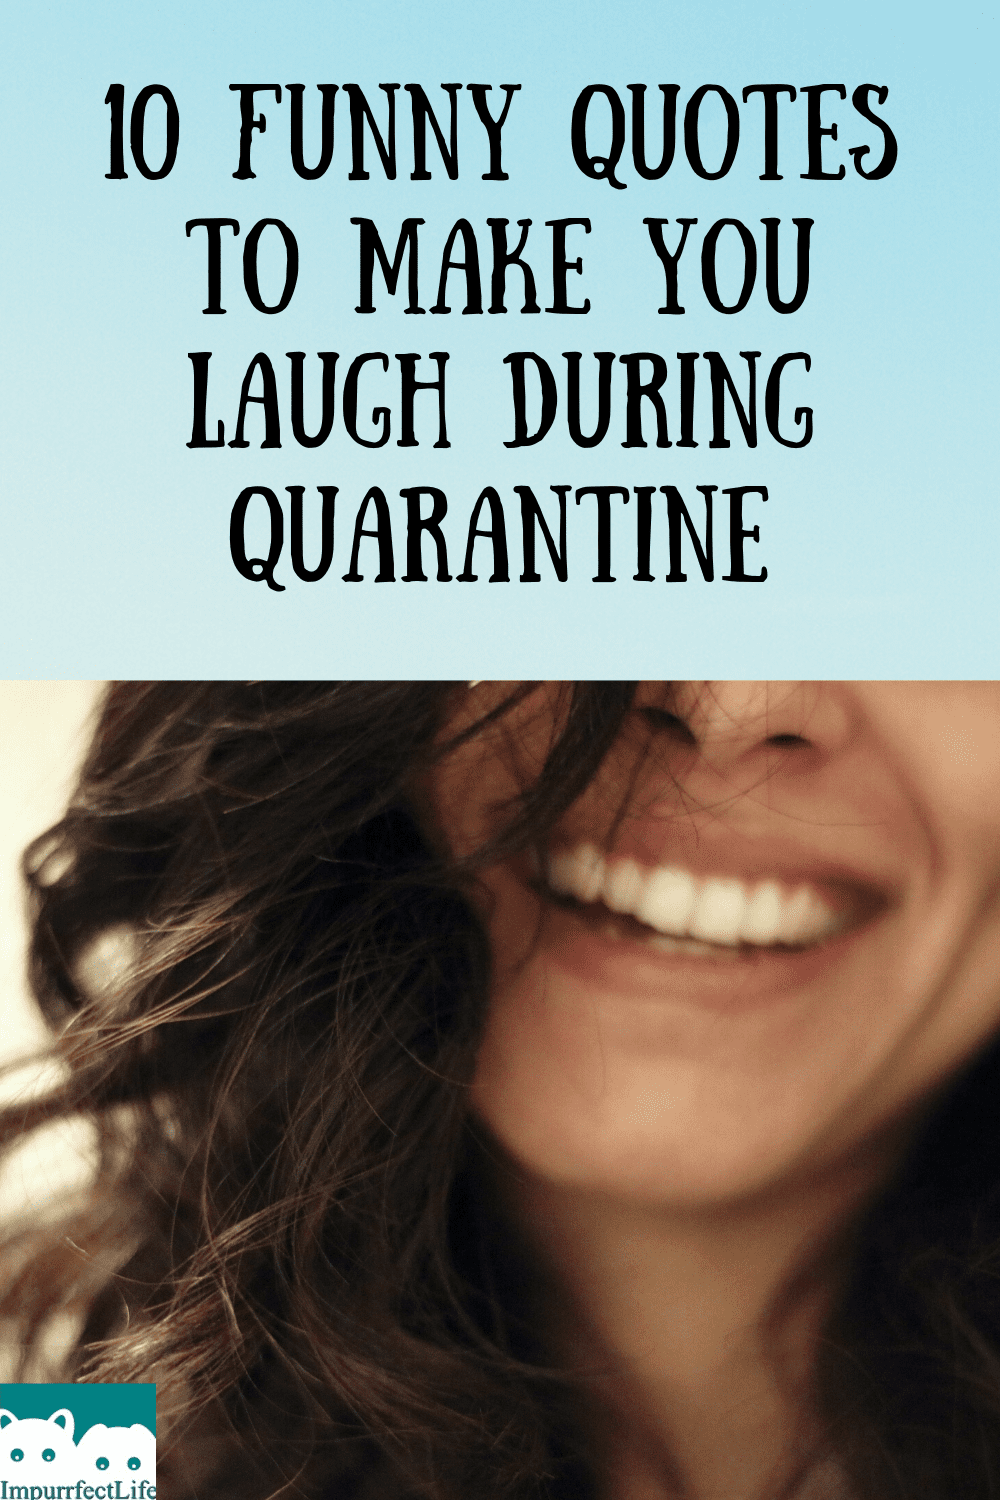 10 funny quotes laugh quarantine